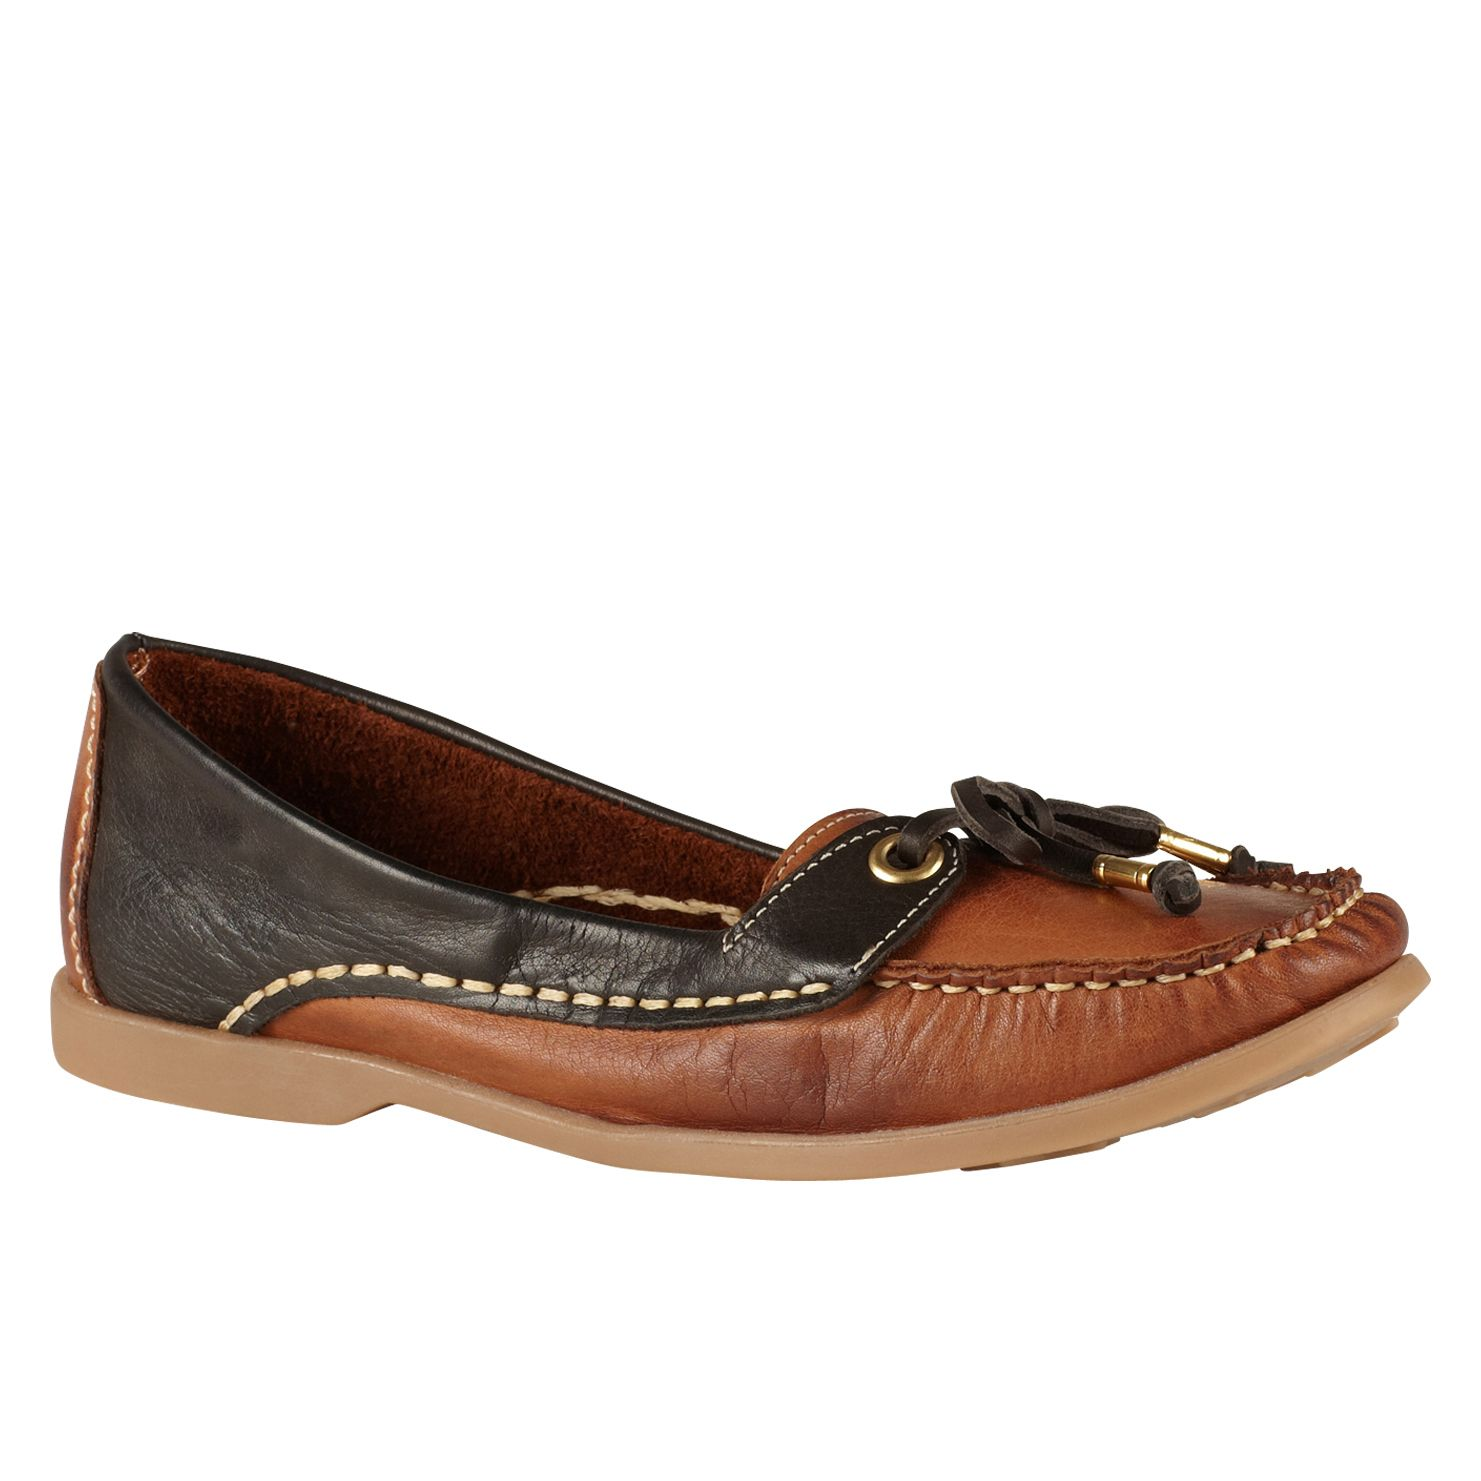 Alovien flat loafer shoes